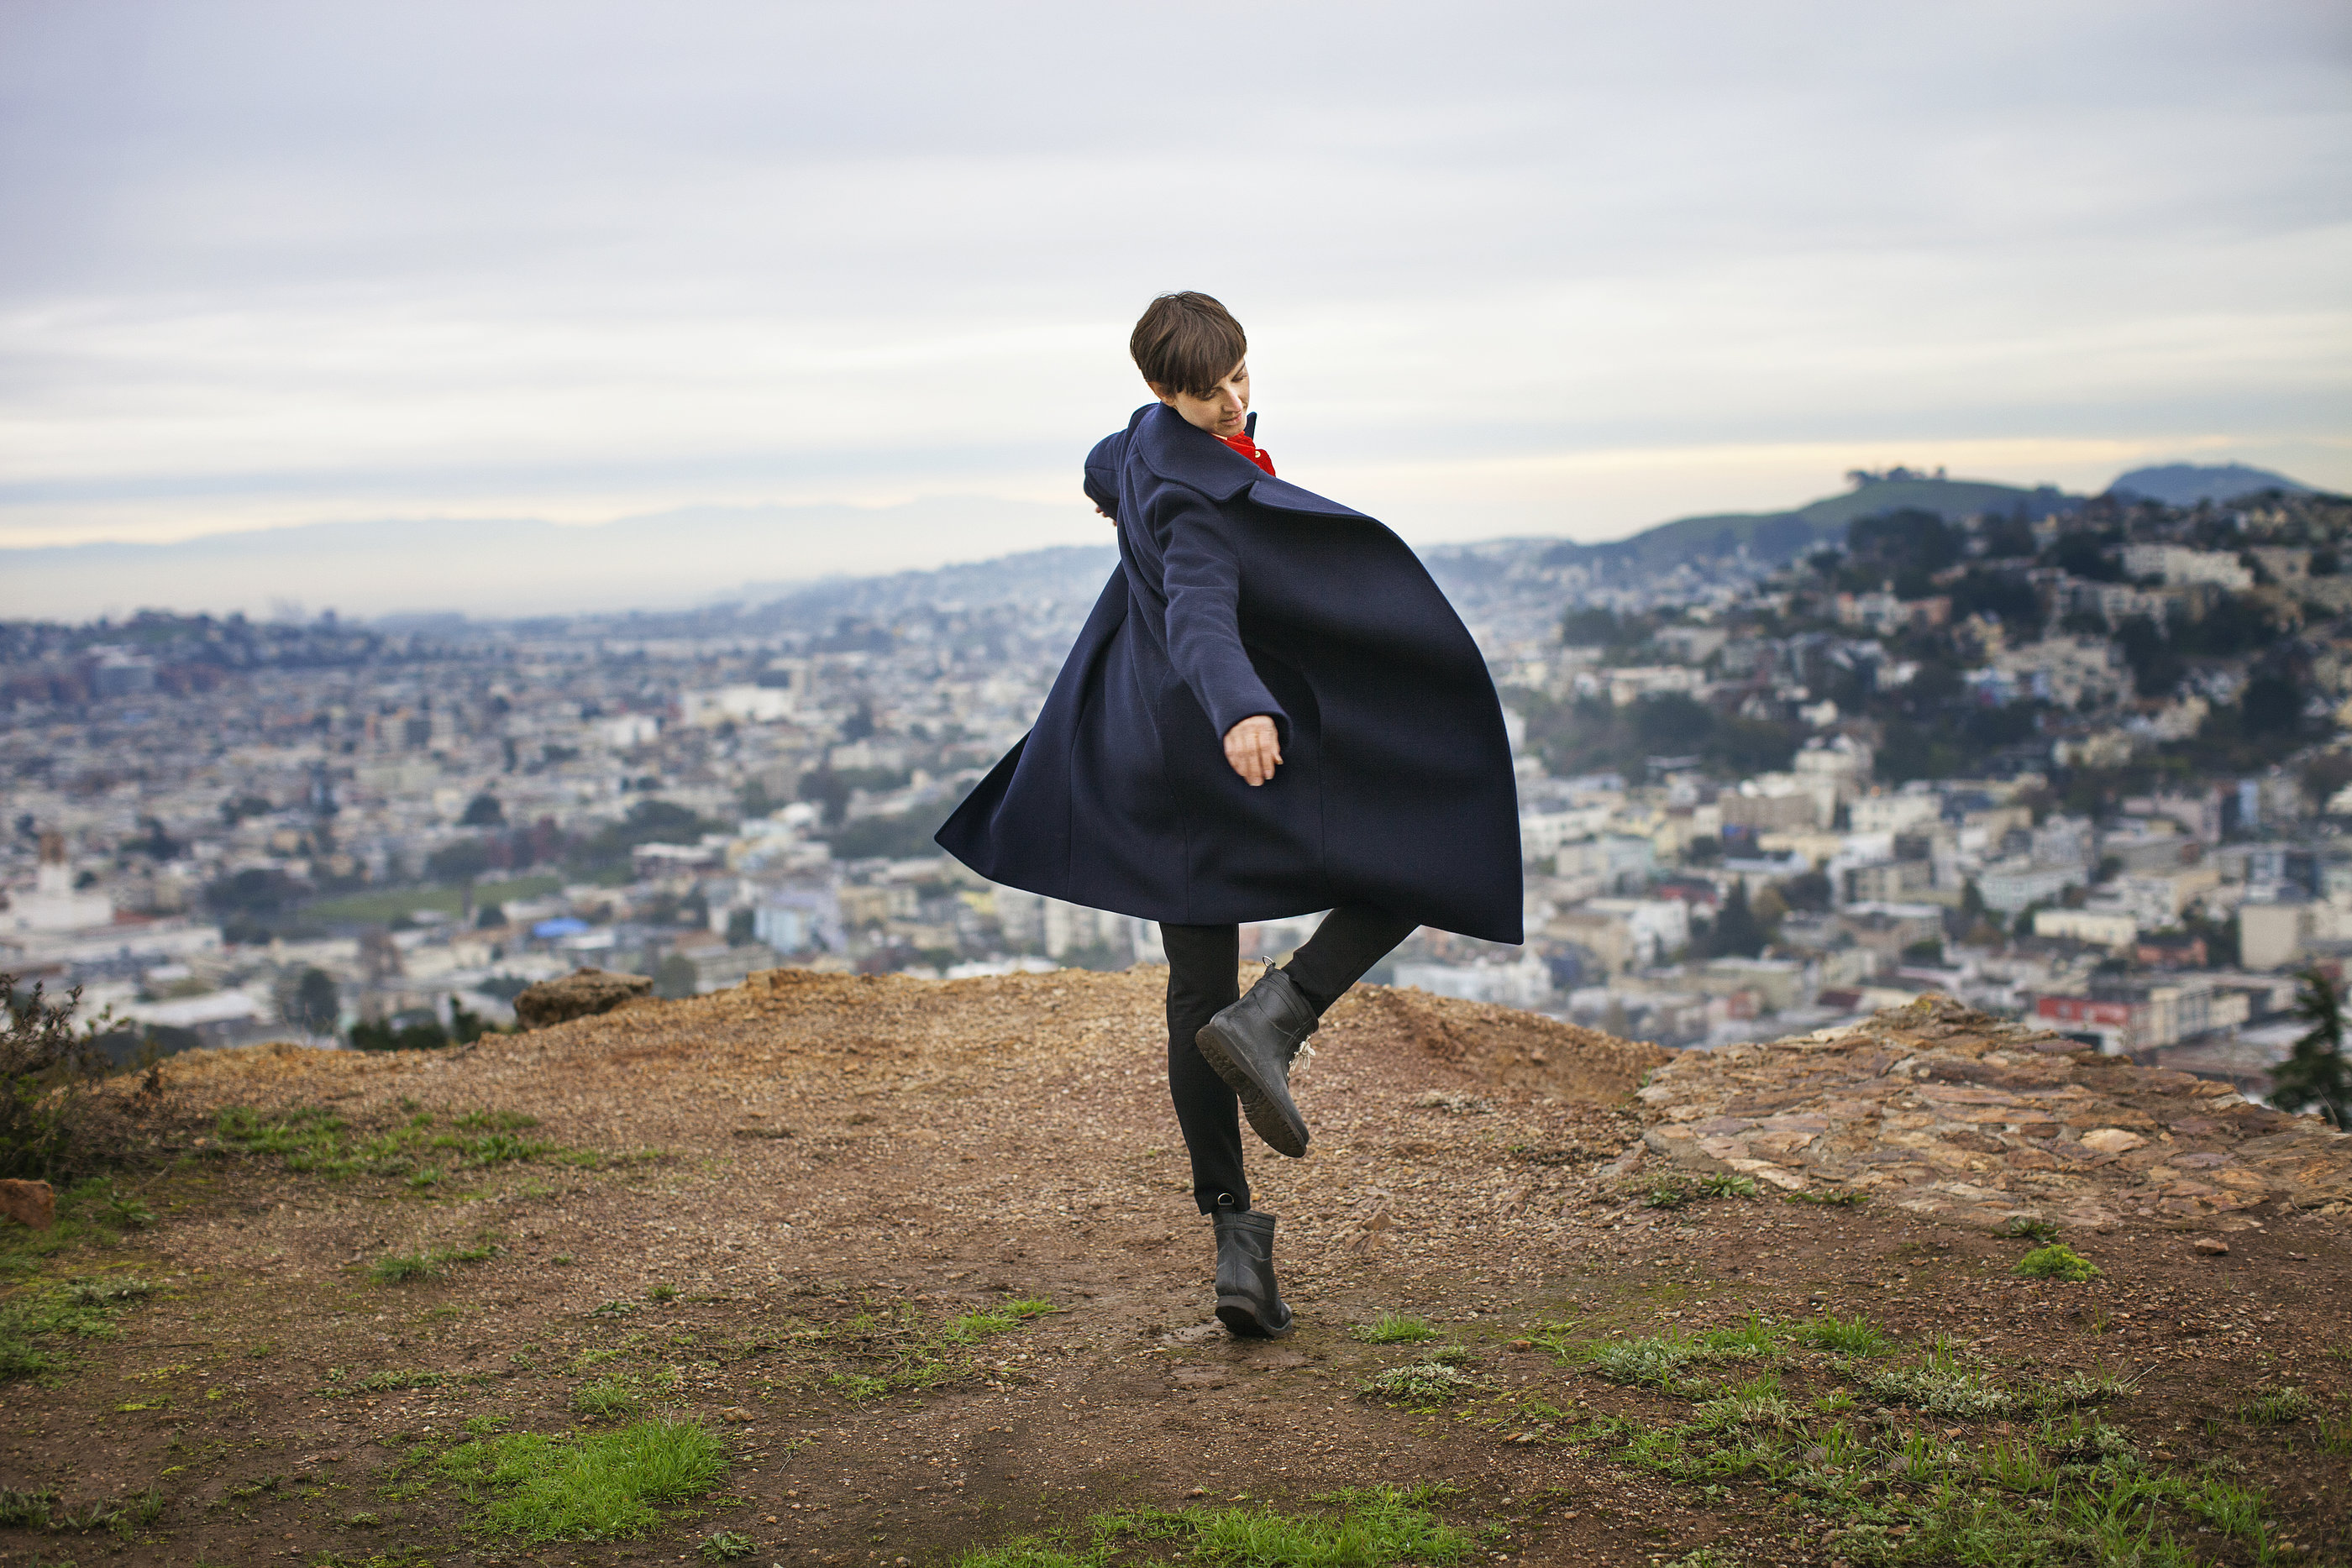 Young woman is dancing alone on a hill